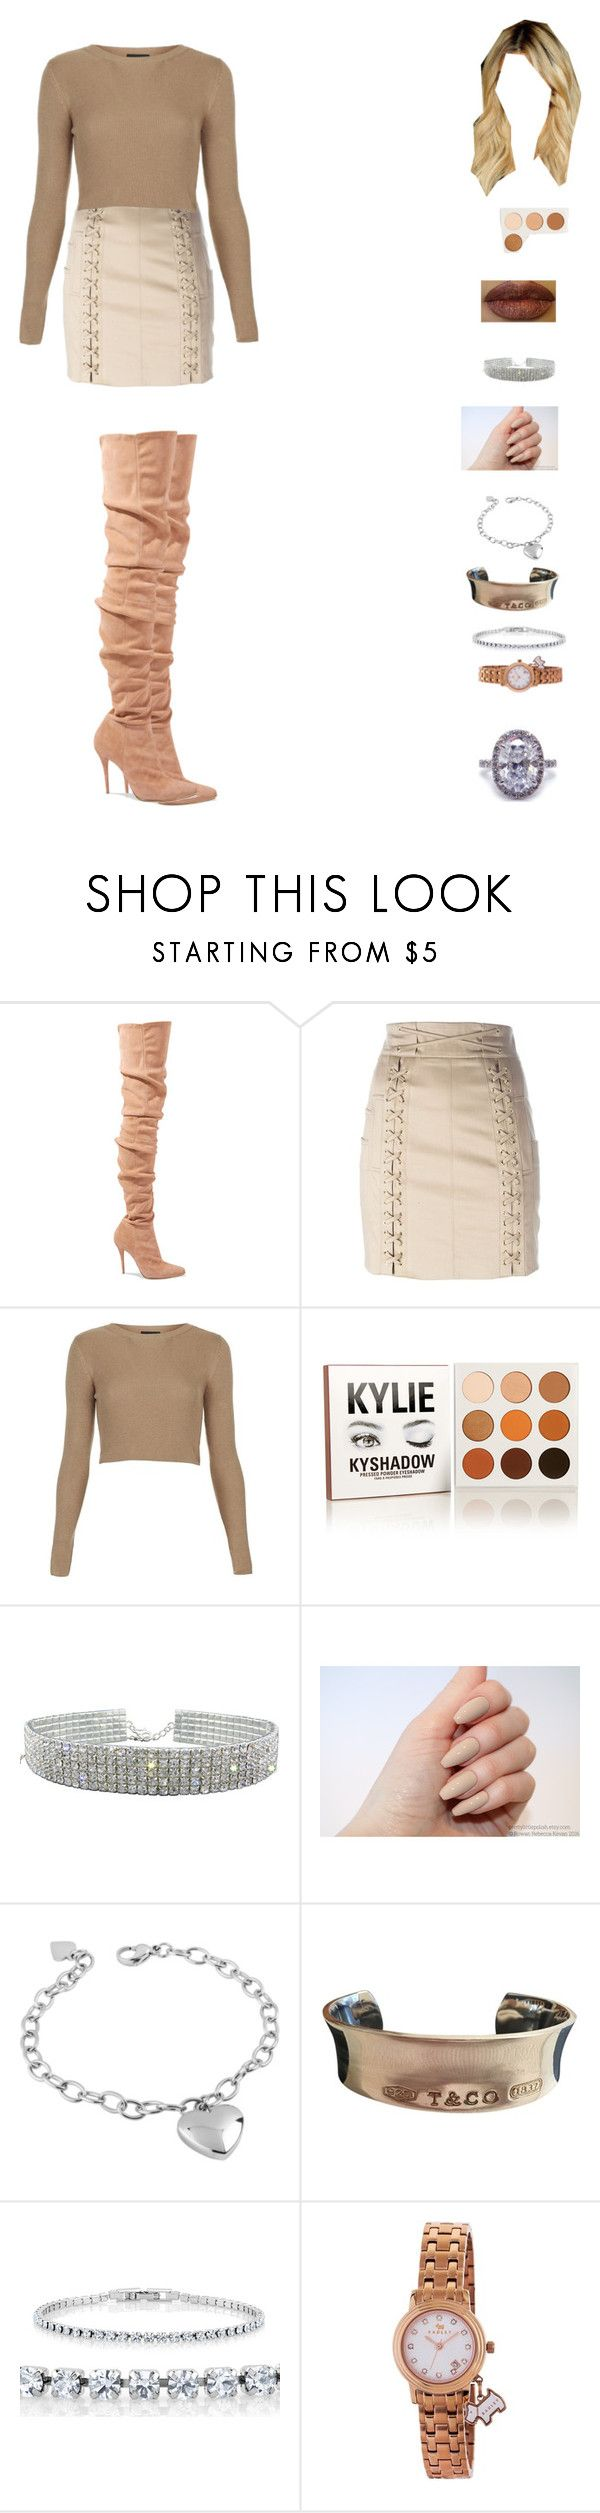 """""""kylie jenner fall look"""" by unicorn-923 ❤ liked on Polyvore featuring Balmain, Topshop, Kylie Cosmetics, West Coast Jewelry, Tiffany & Co. and Radley"""